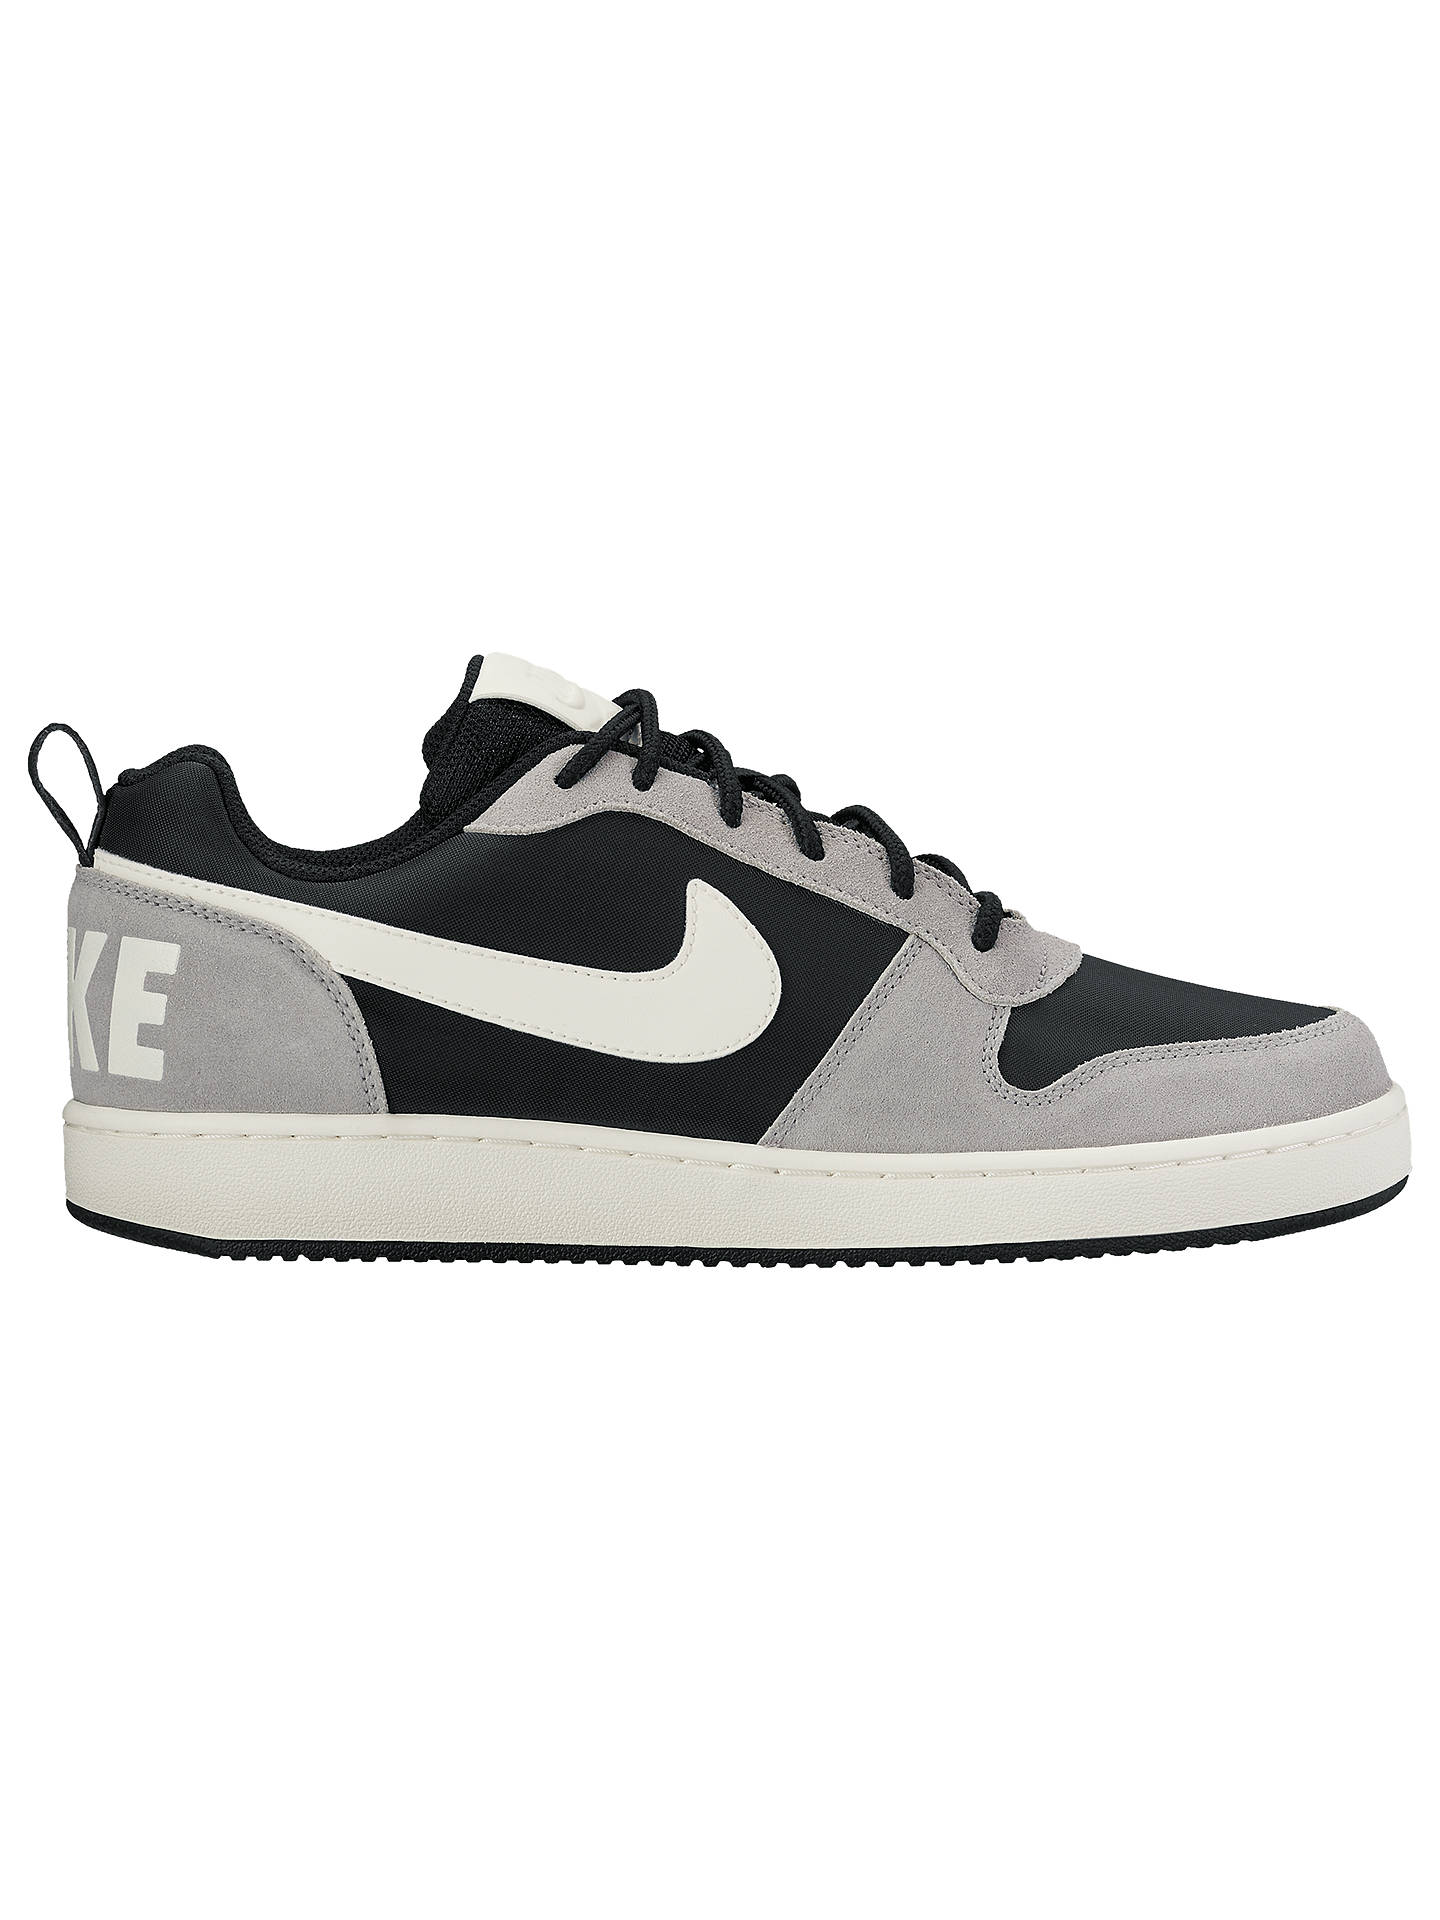 50d4f228db4 Buy Nike Court Borough Low Premium Men's Trainers, Black/Silver, 7 Online  at ...